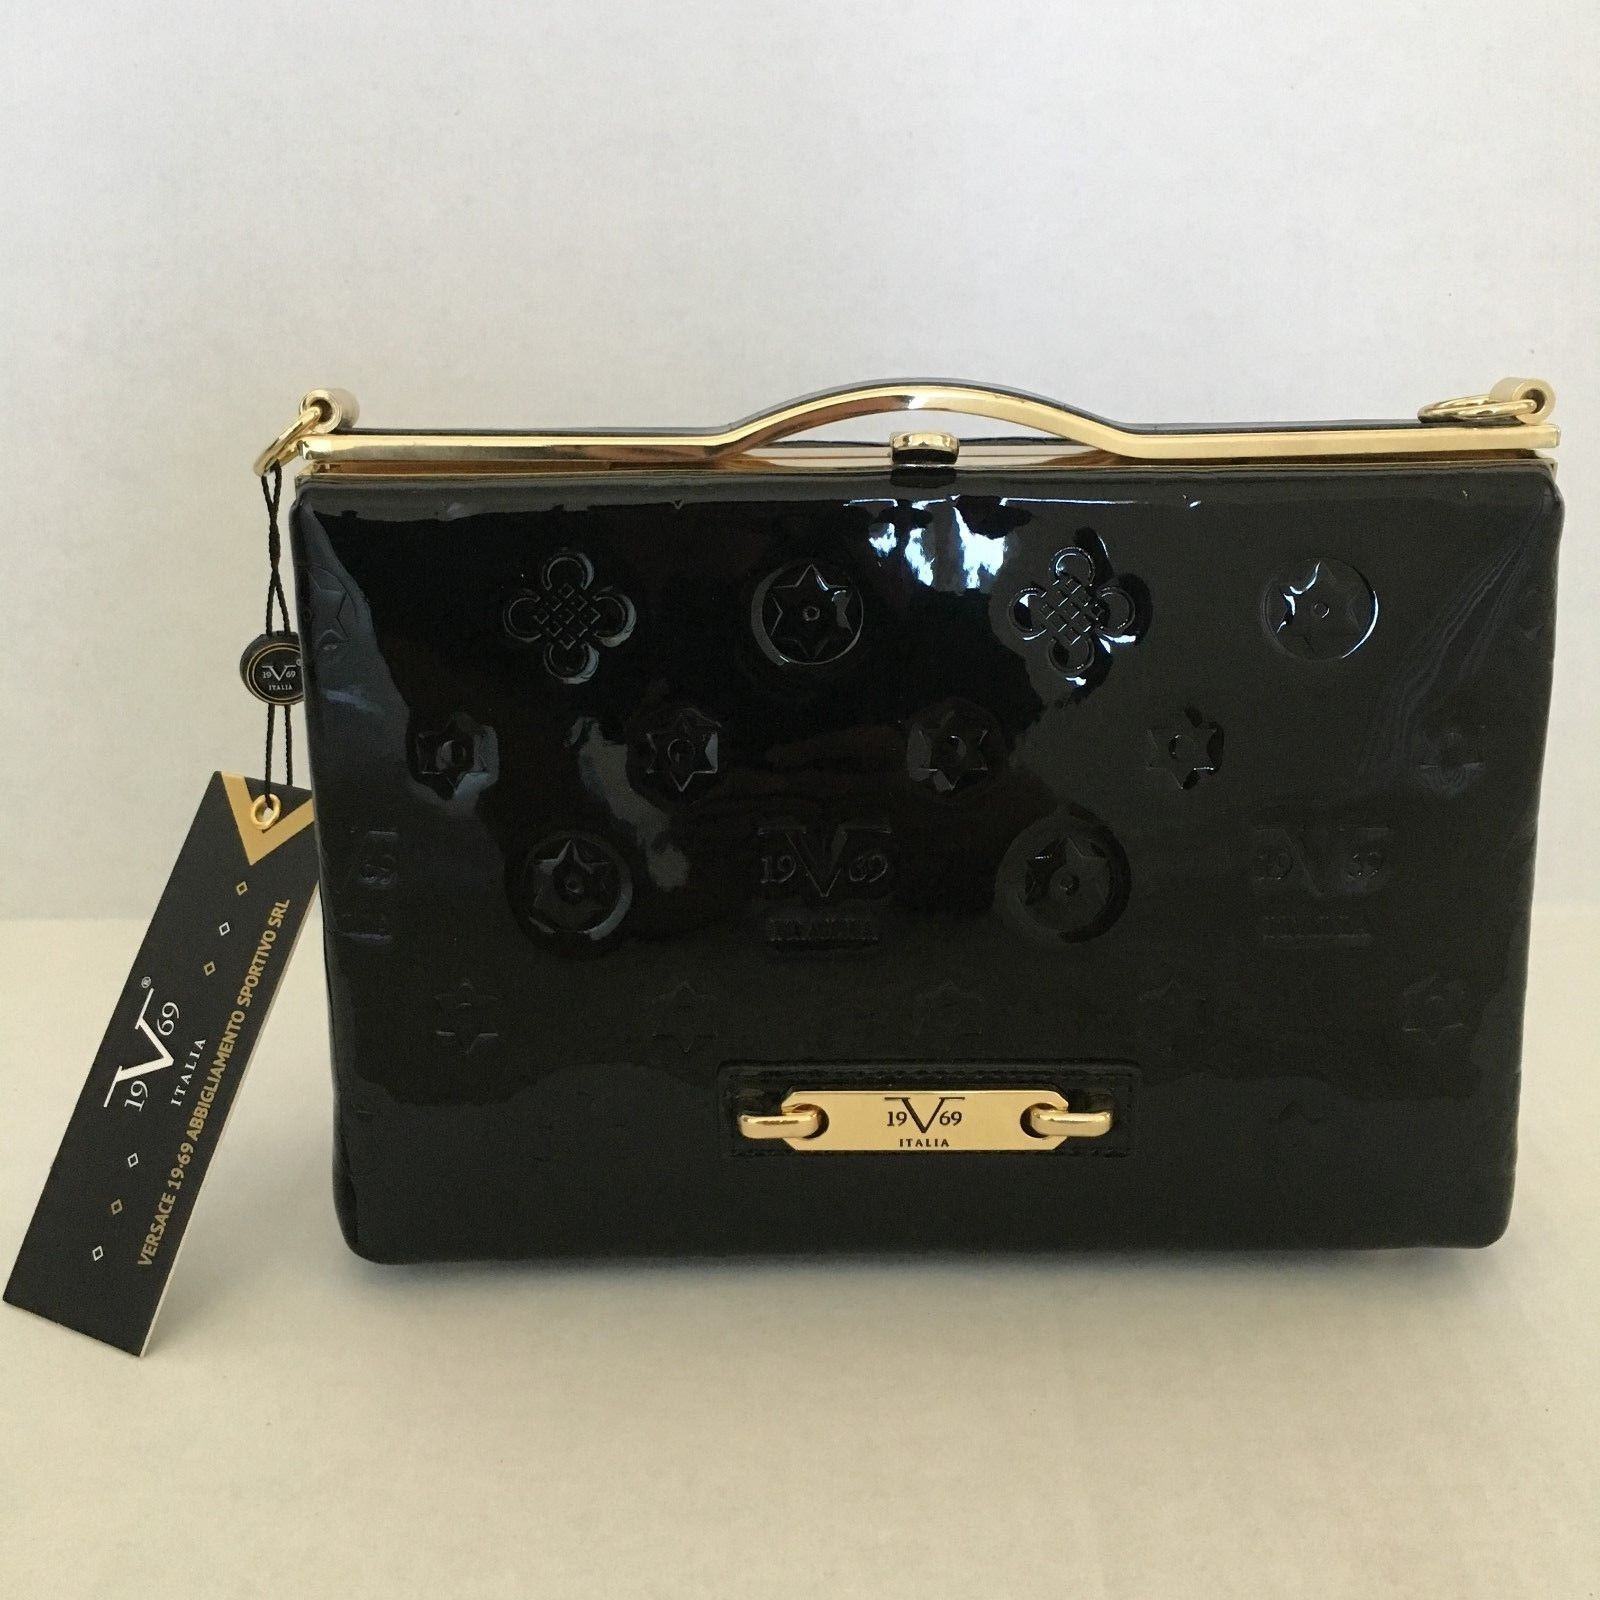 2759f42a2098 ... BAG NEW  on sale 65c26 34162 NEW VERSACE1969 ITALIA Scarlett Crossbody 19V69  Handbag Black ...